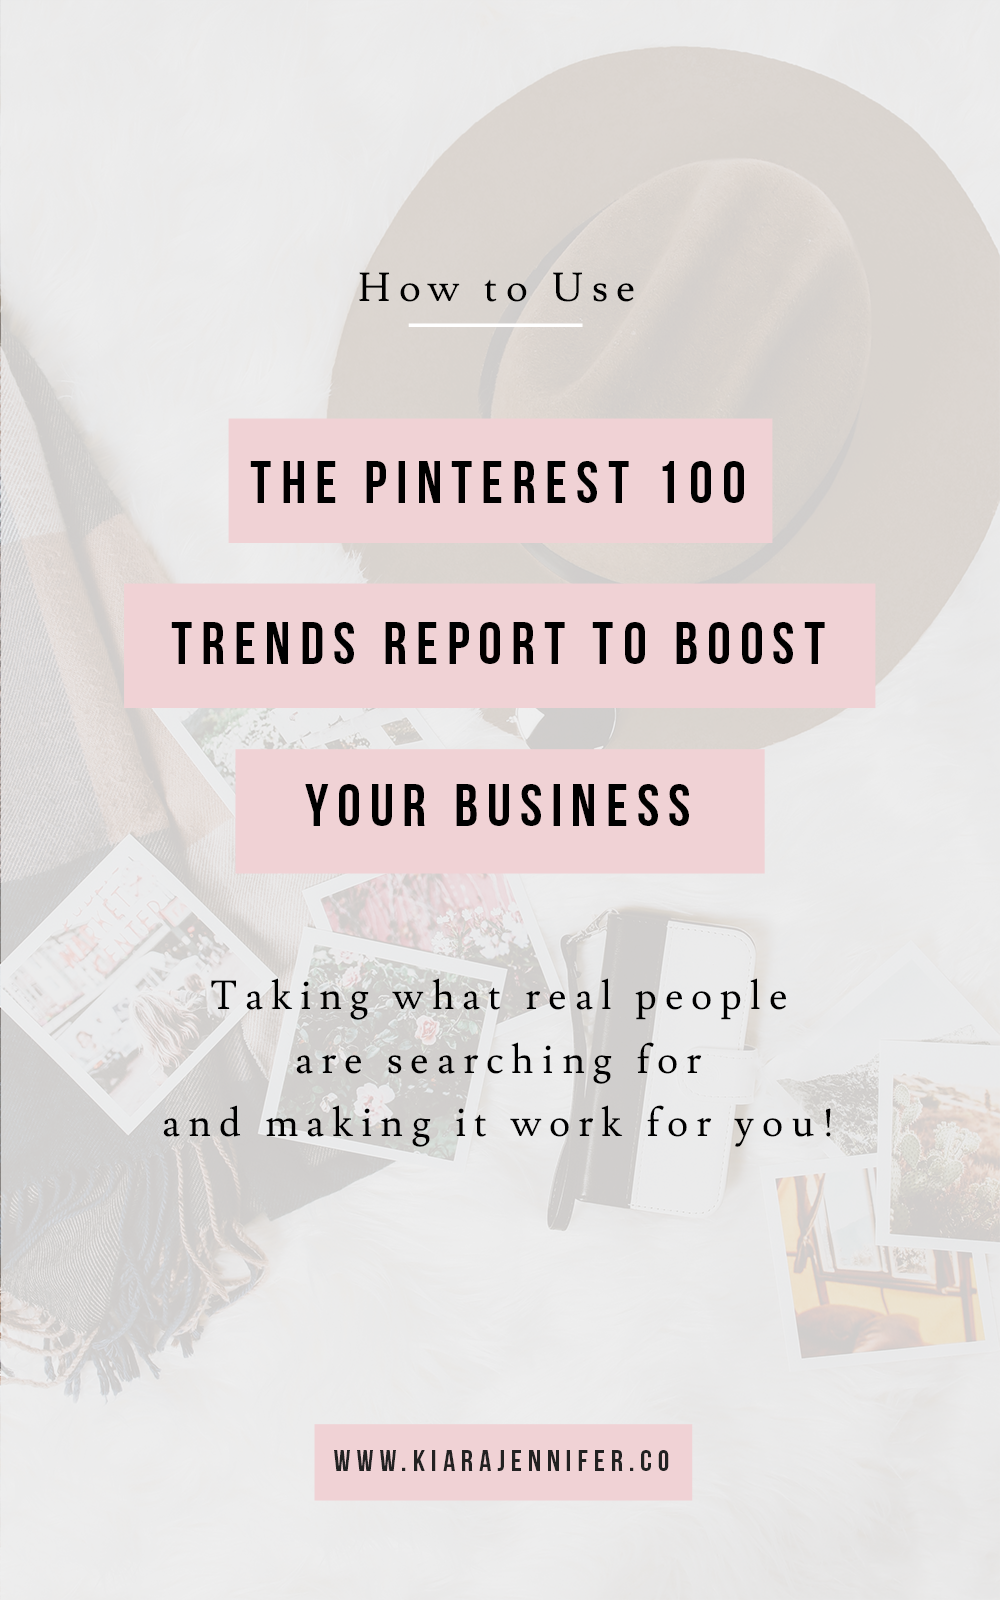 Boost Your Business with Pinterest Marketing | Pinterest 100 Trends | Social Media Marketing and Digital Public Relations | Kiara Jennifer and Co.